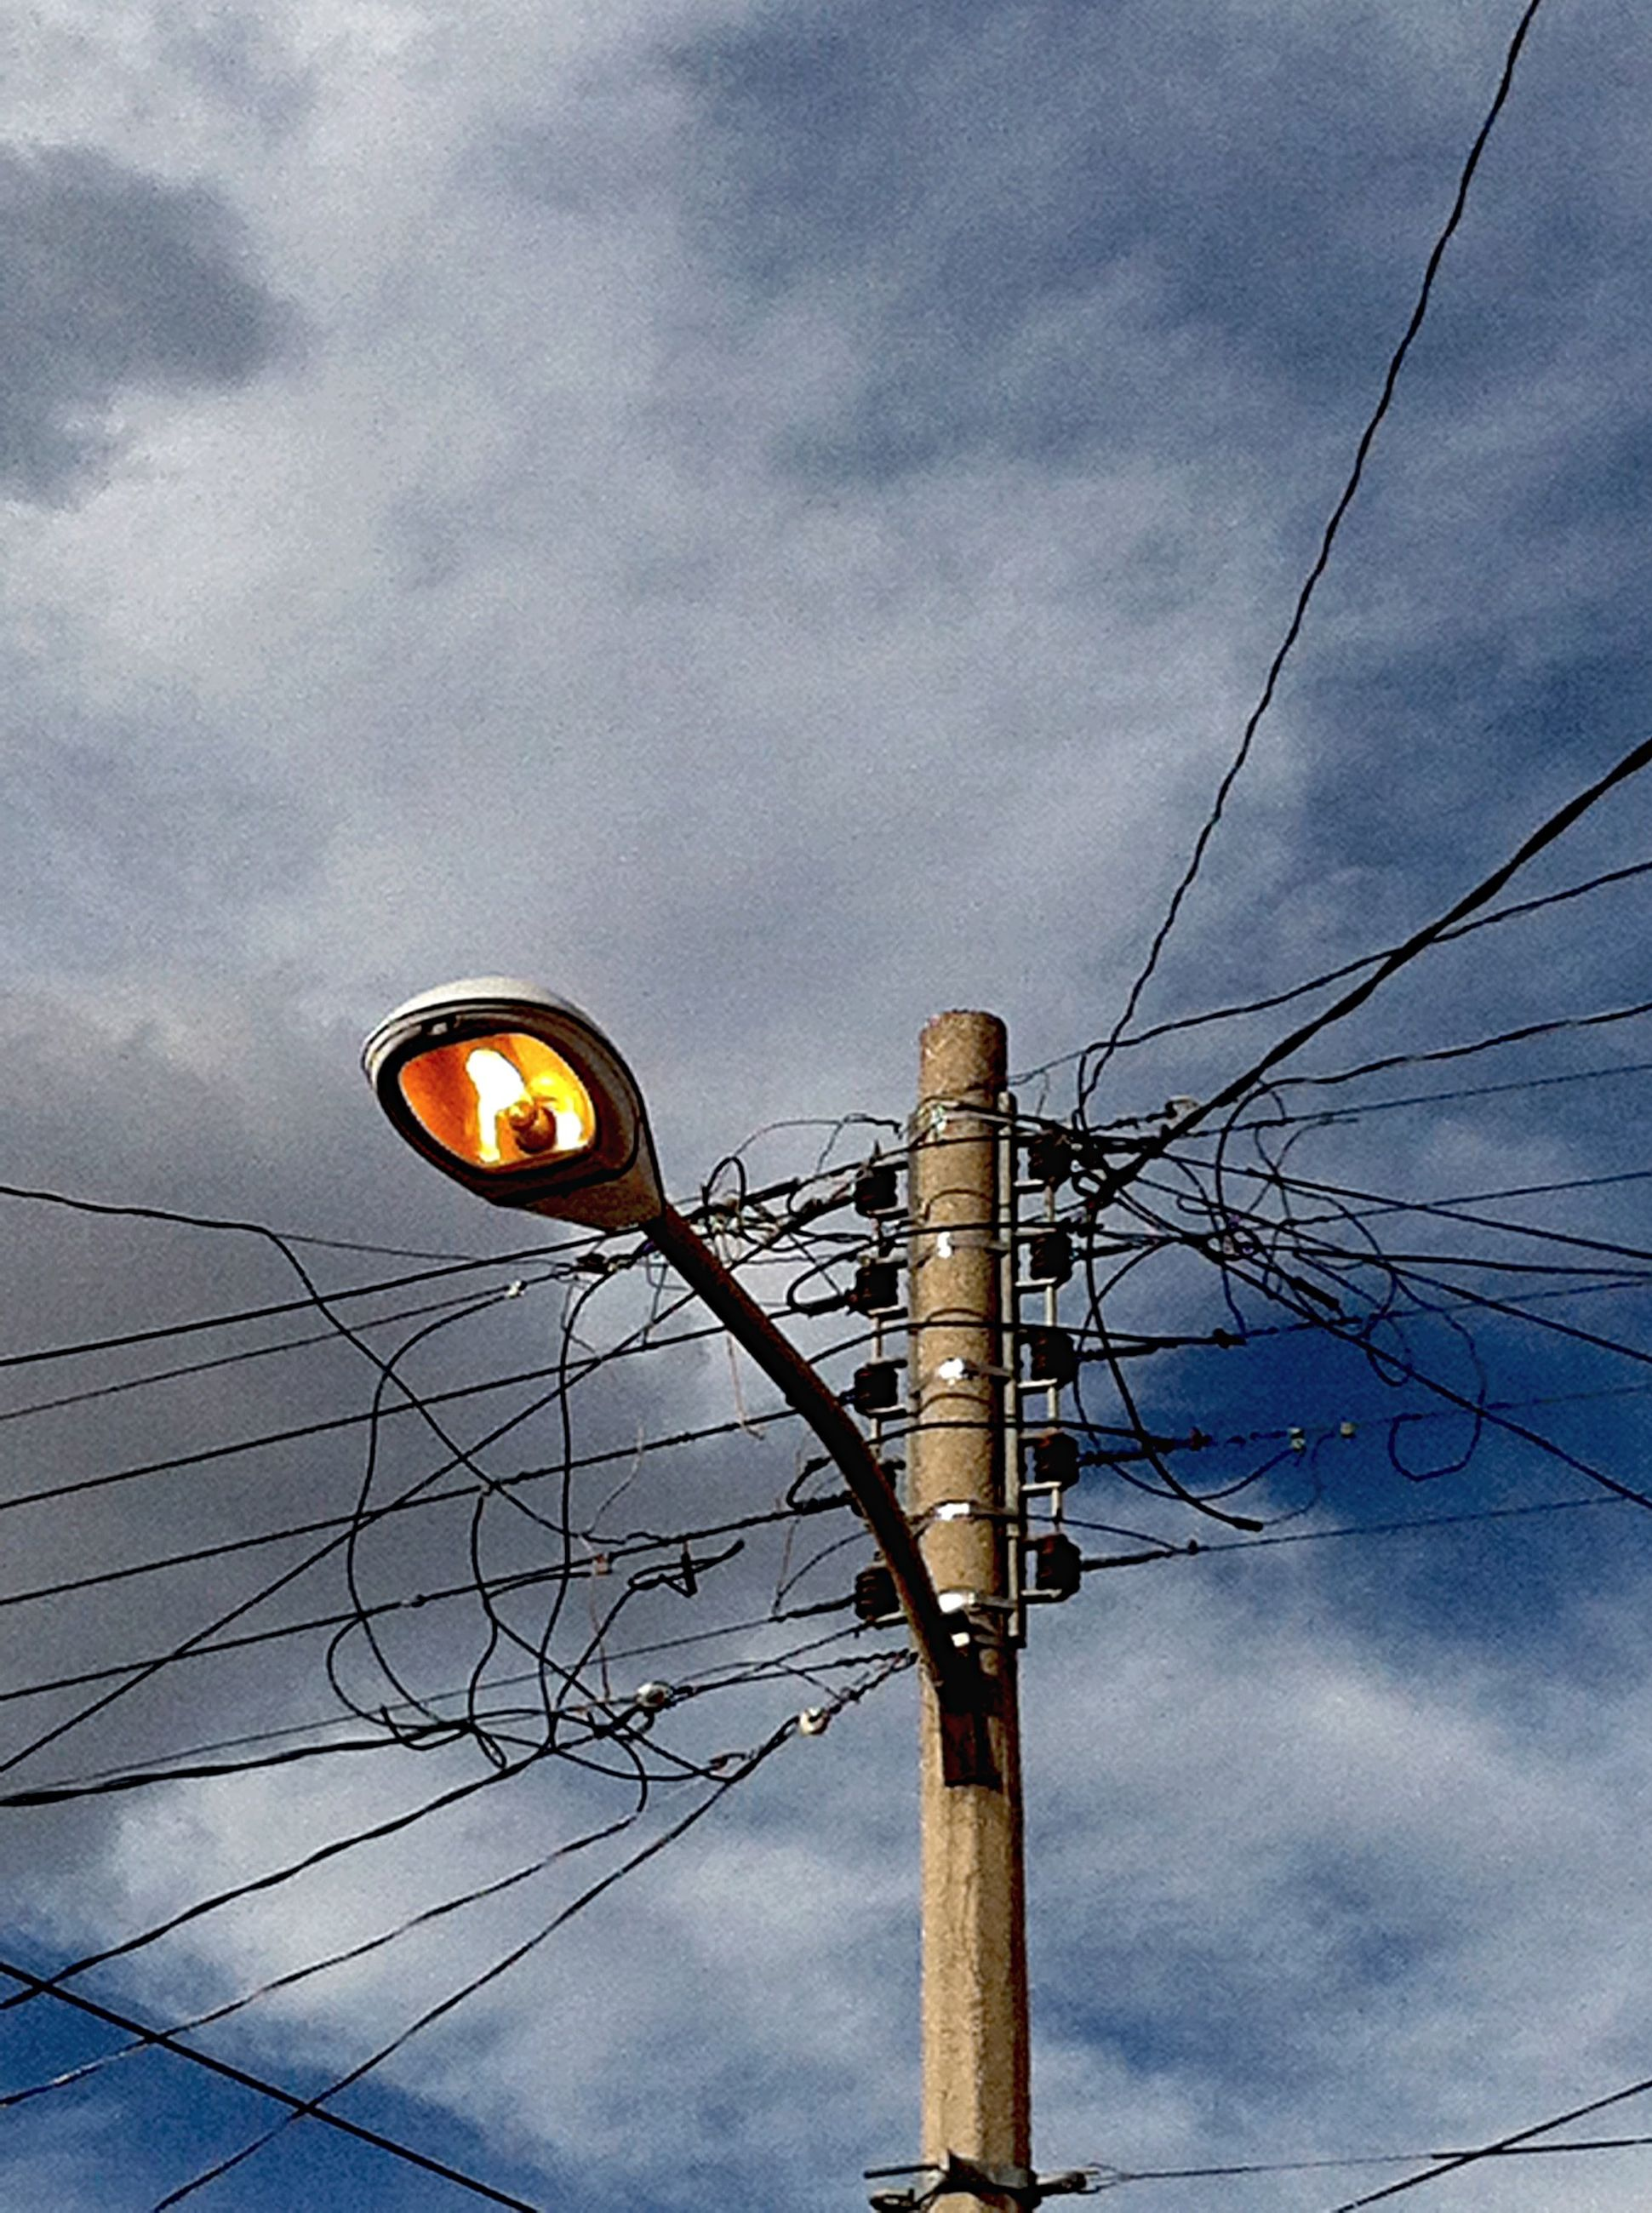 low angle view, electricity, power line, sky, connection, cable, power supply, electricity pylon, cloud - sky, lighting equipment, street light, cloudy, technology, fuel and power generation, power cable, cloud, built structure, no people, outdoors, dusk